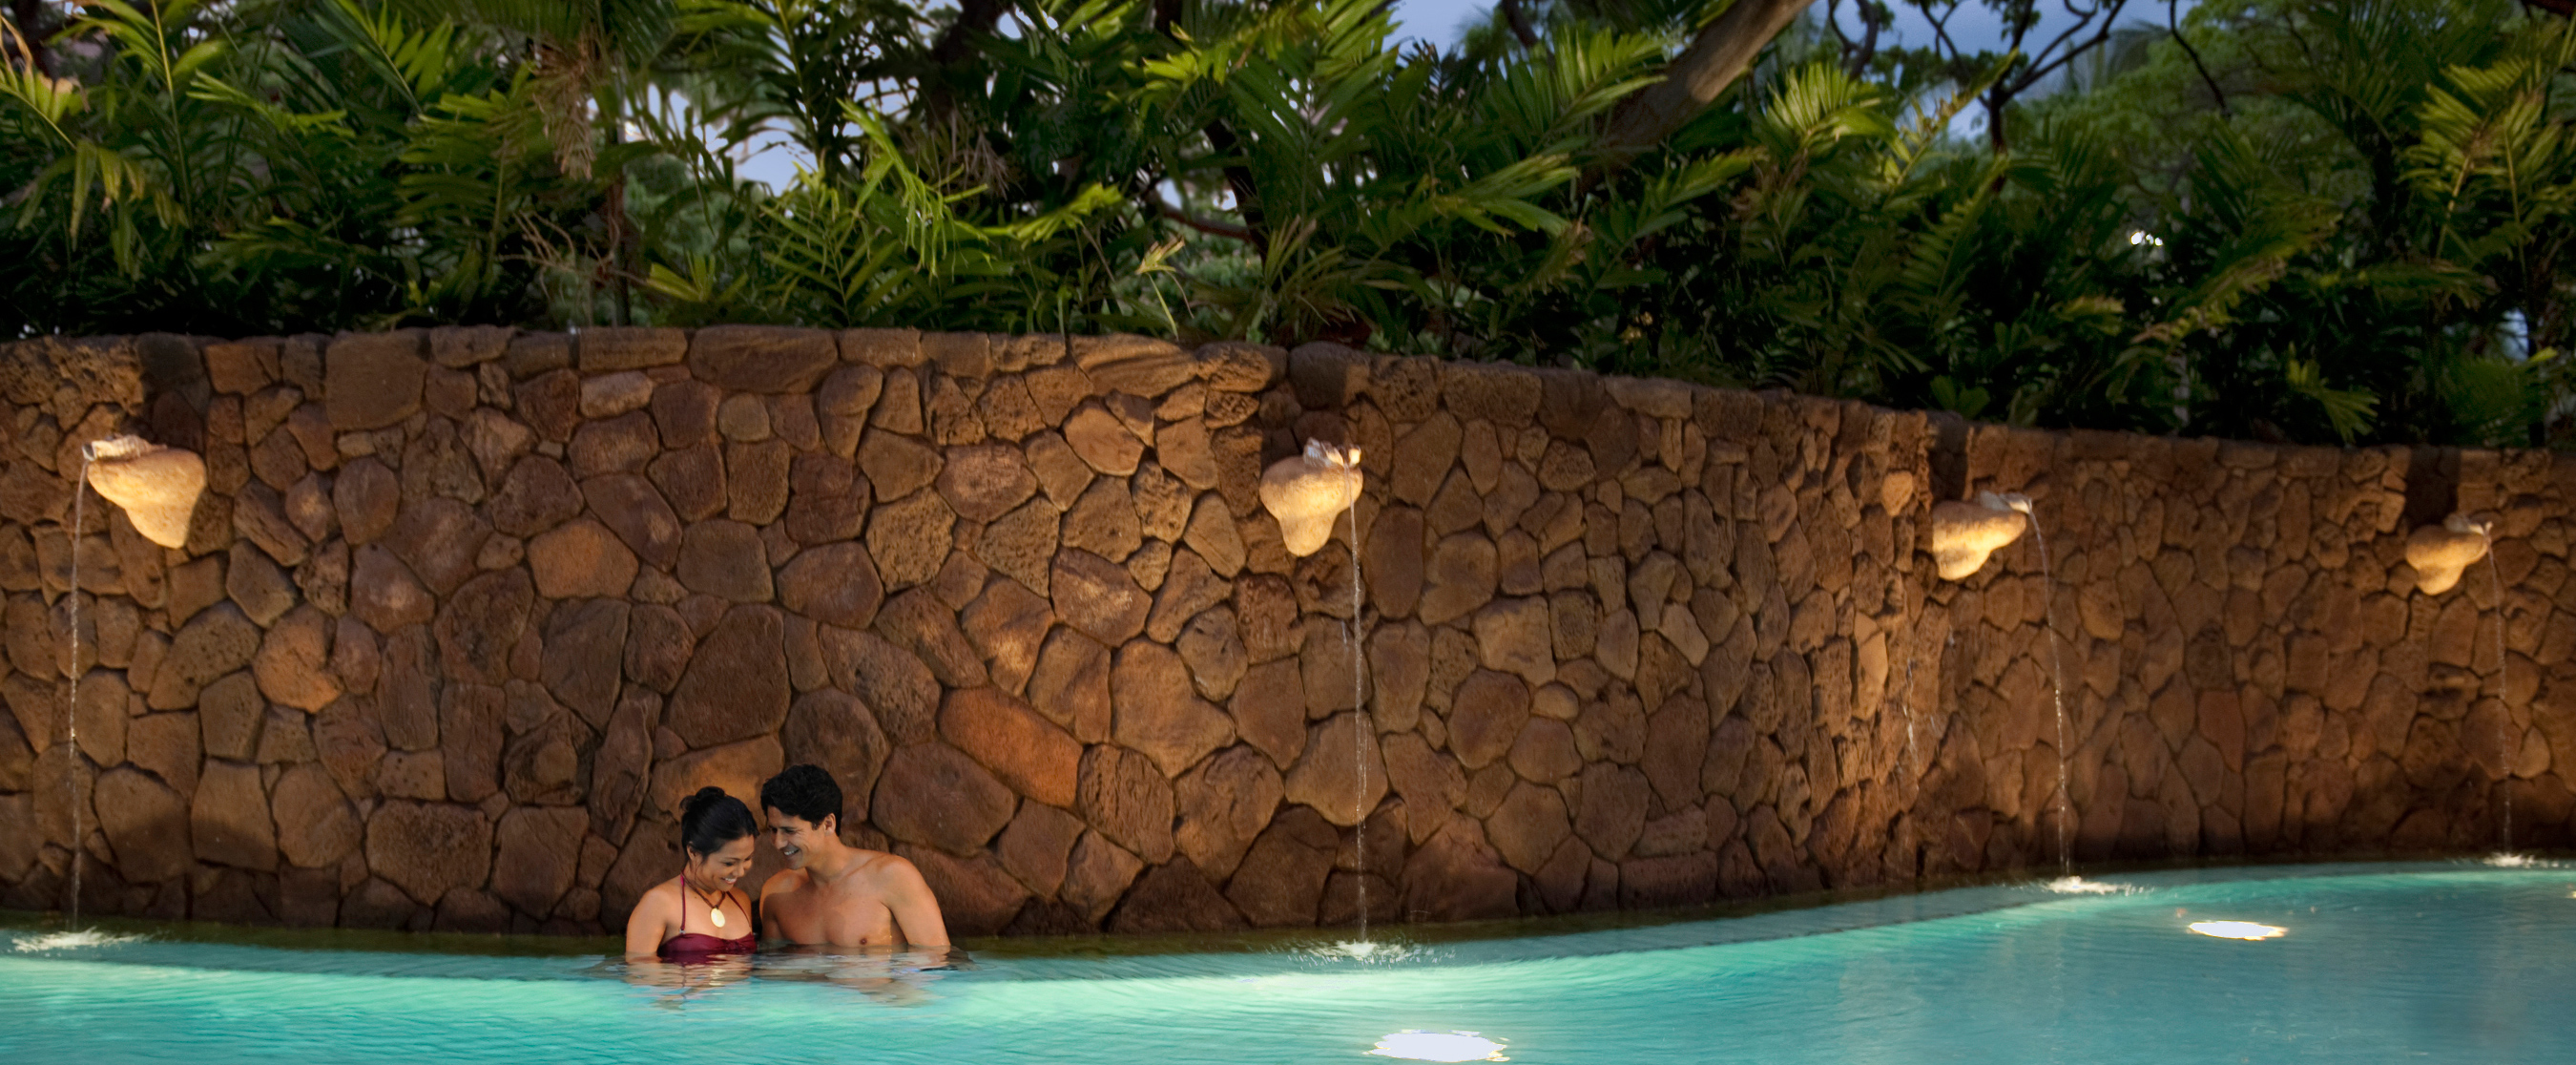 A woman and man at dusk in a pool with a high, curving rock wall accented with shell-like water spouts